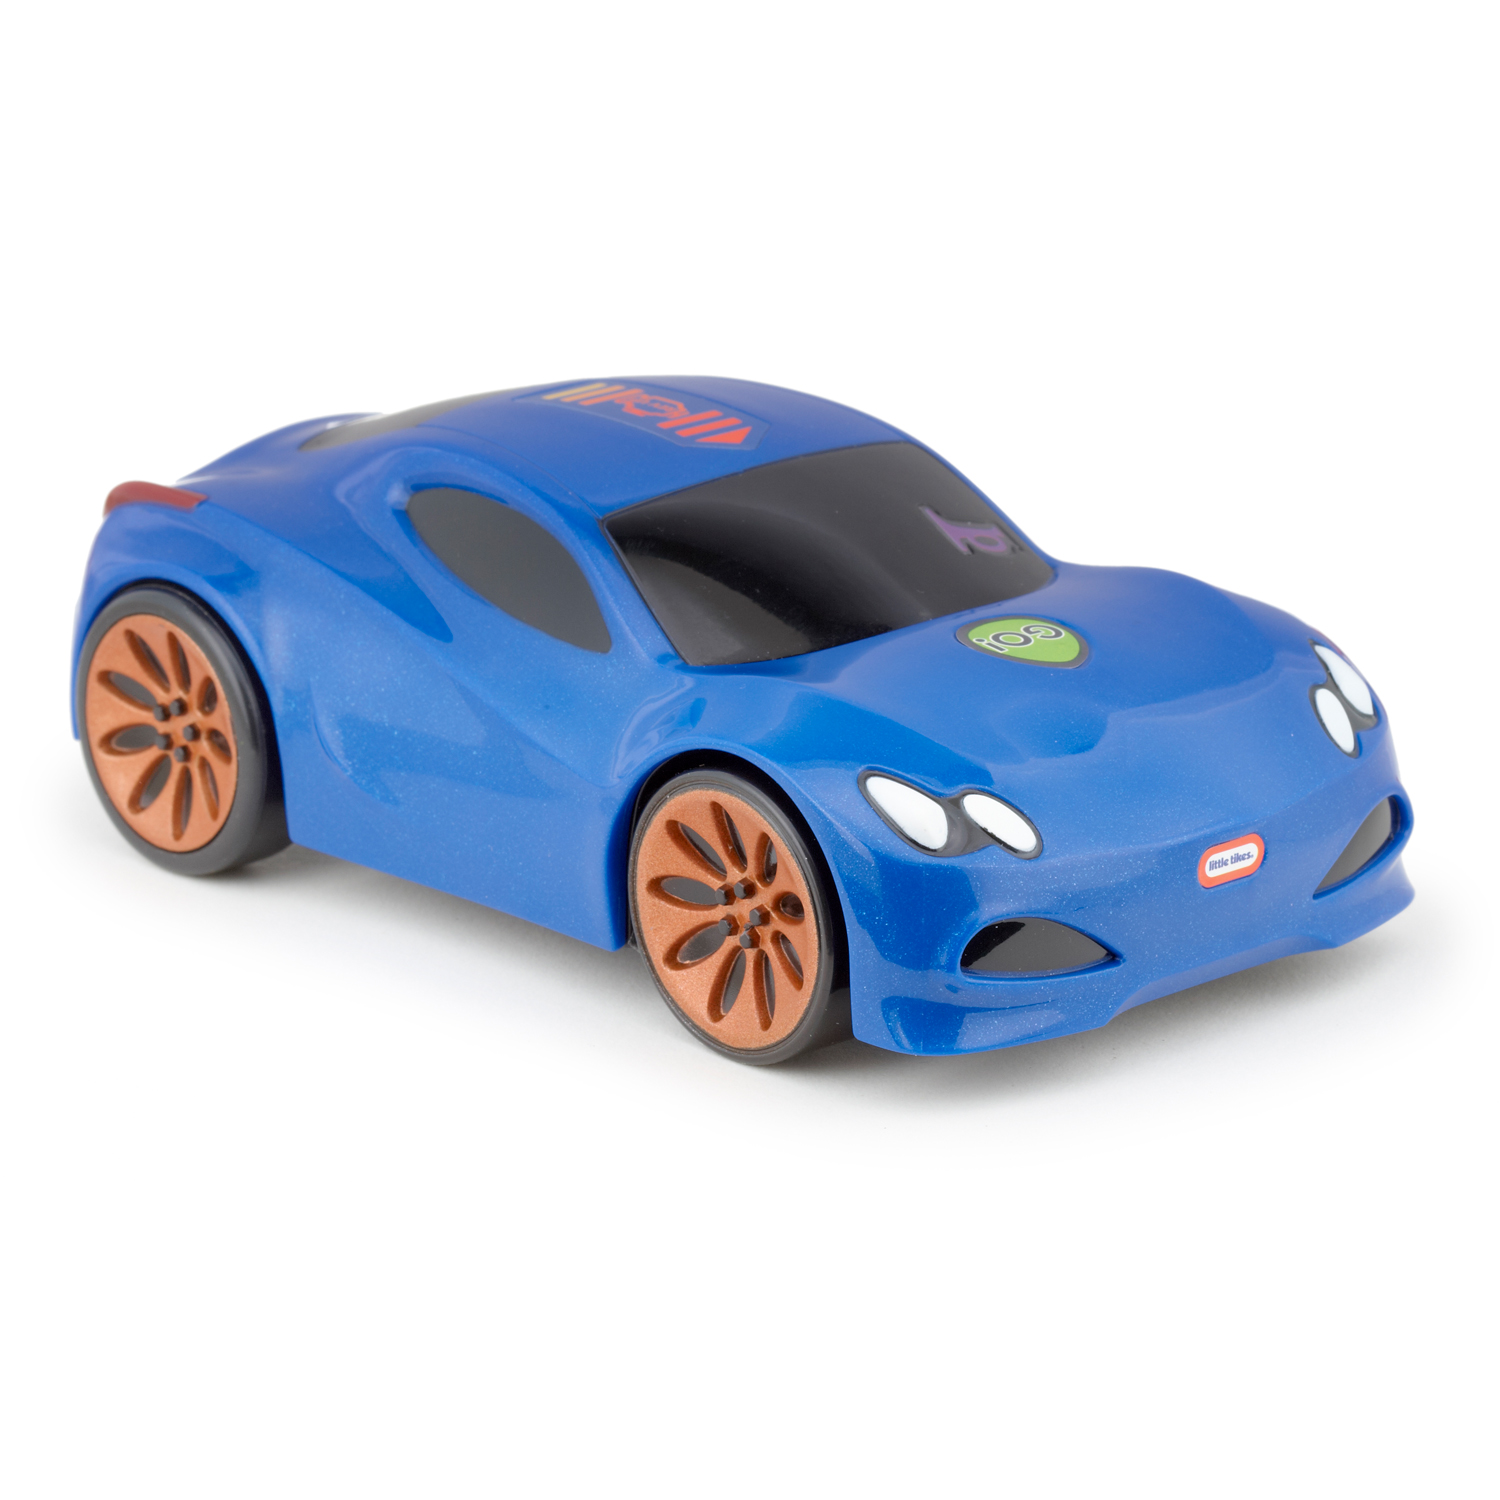 Little Tikes Touch n' Go Racers- Blue Sportscar